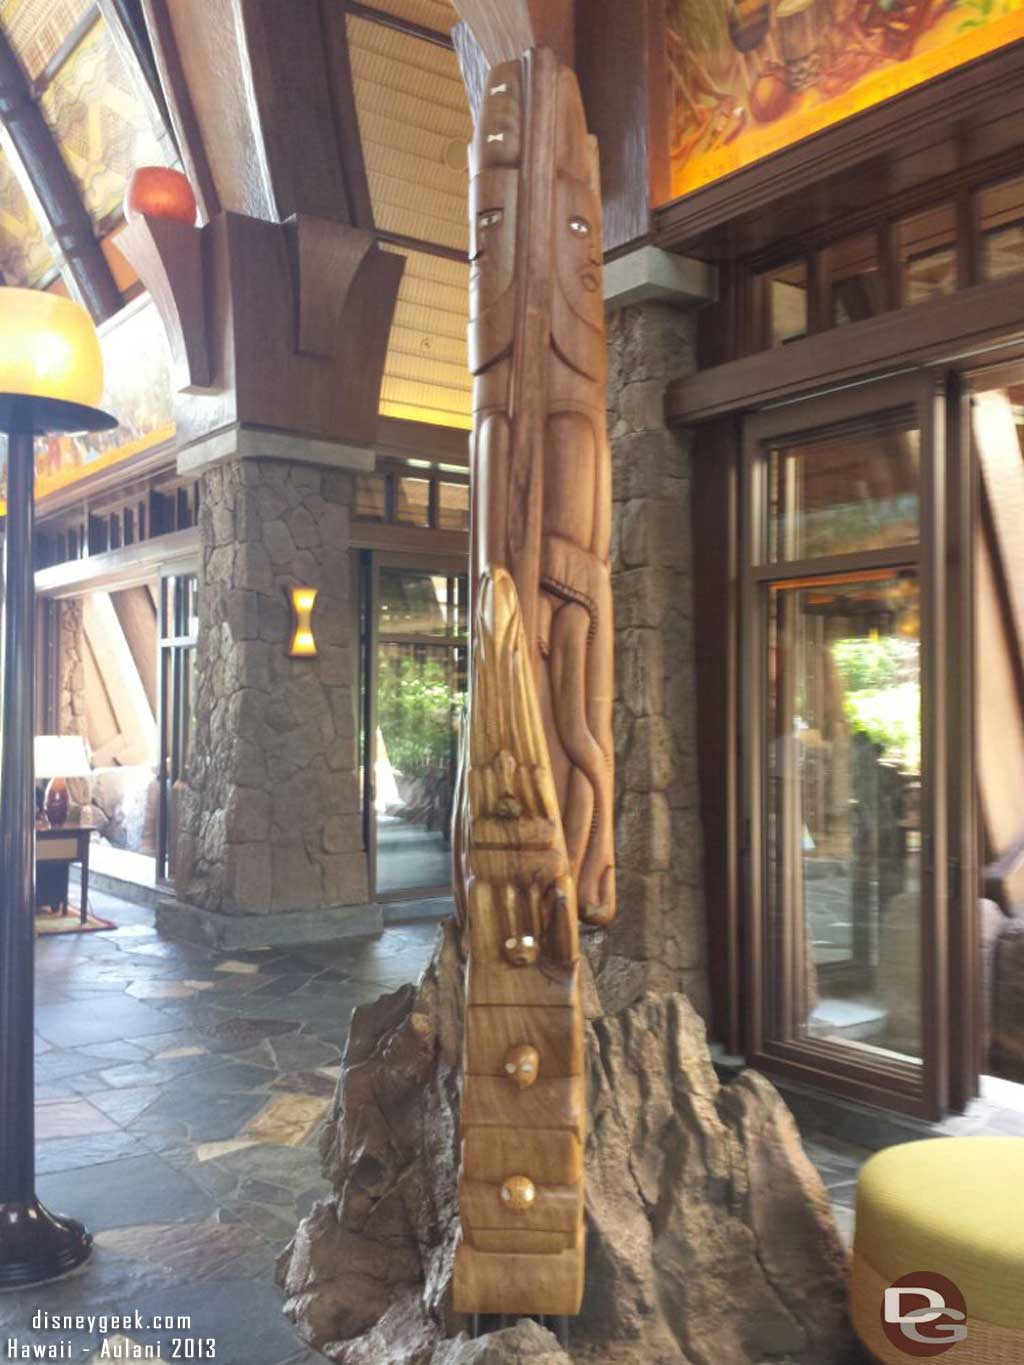 Back at #Aulani one of the sculptures in the lobby